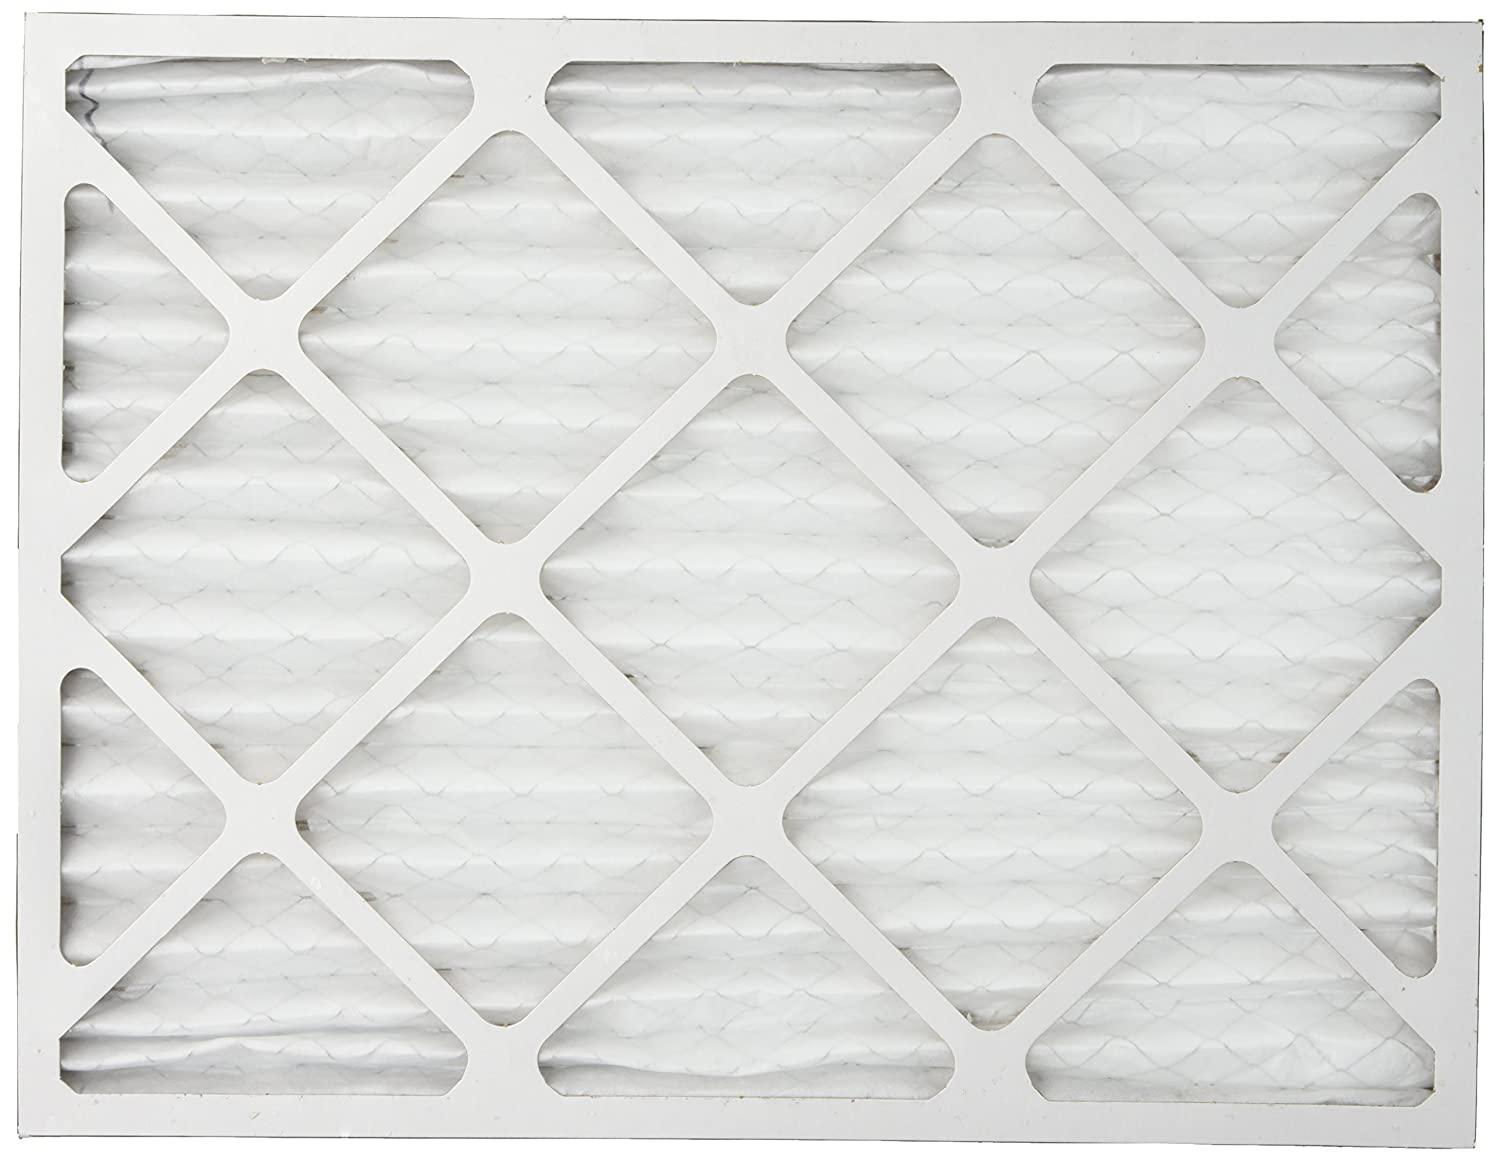 Silver FilterBuy 14x18x1 MERV 8 Pleated AC Furnace Air Filter, 14x18x1 Pack of 2 Filters